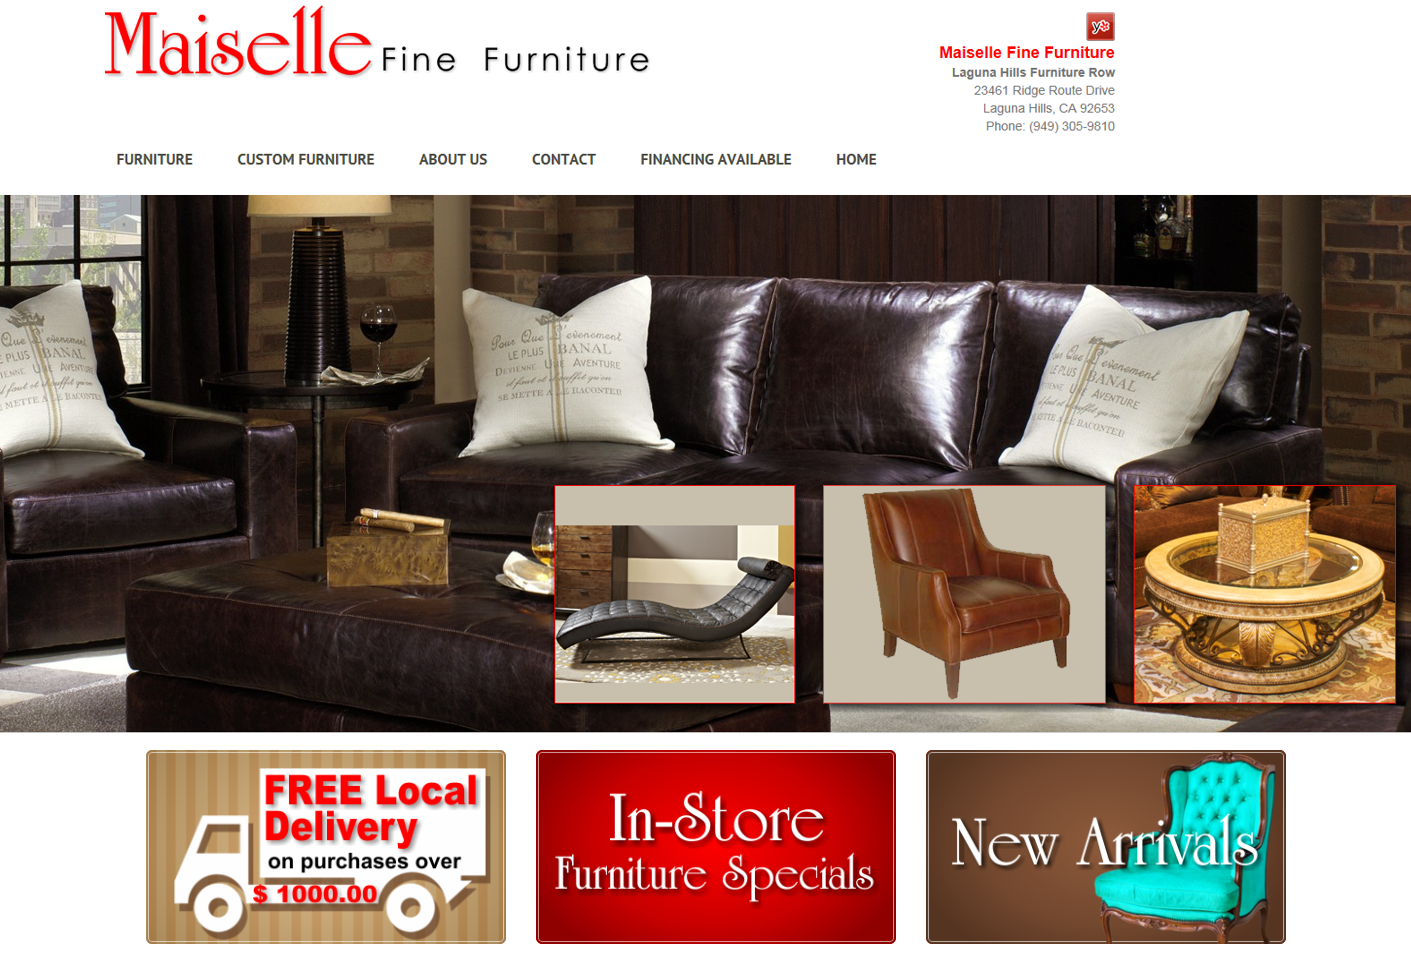 Orange County Web Design Marketing Agency 1ez Consulting Latest Success Maie Fine Furniture Laguna Hills Visit